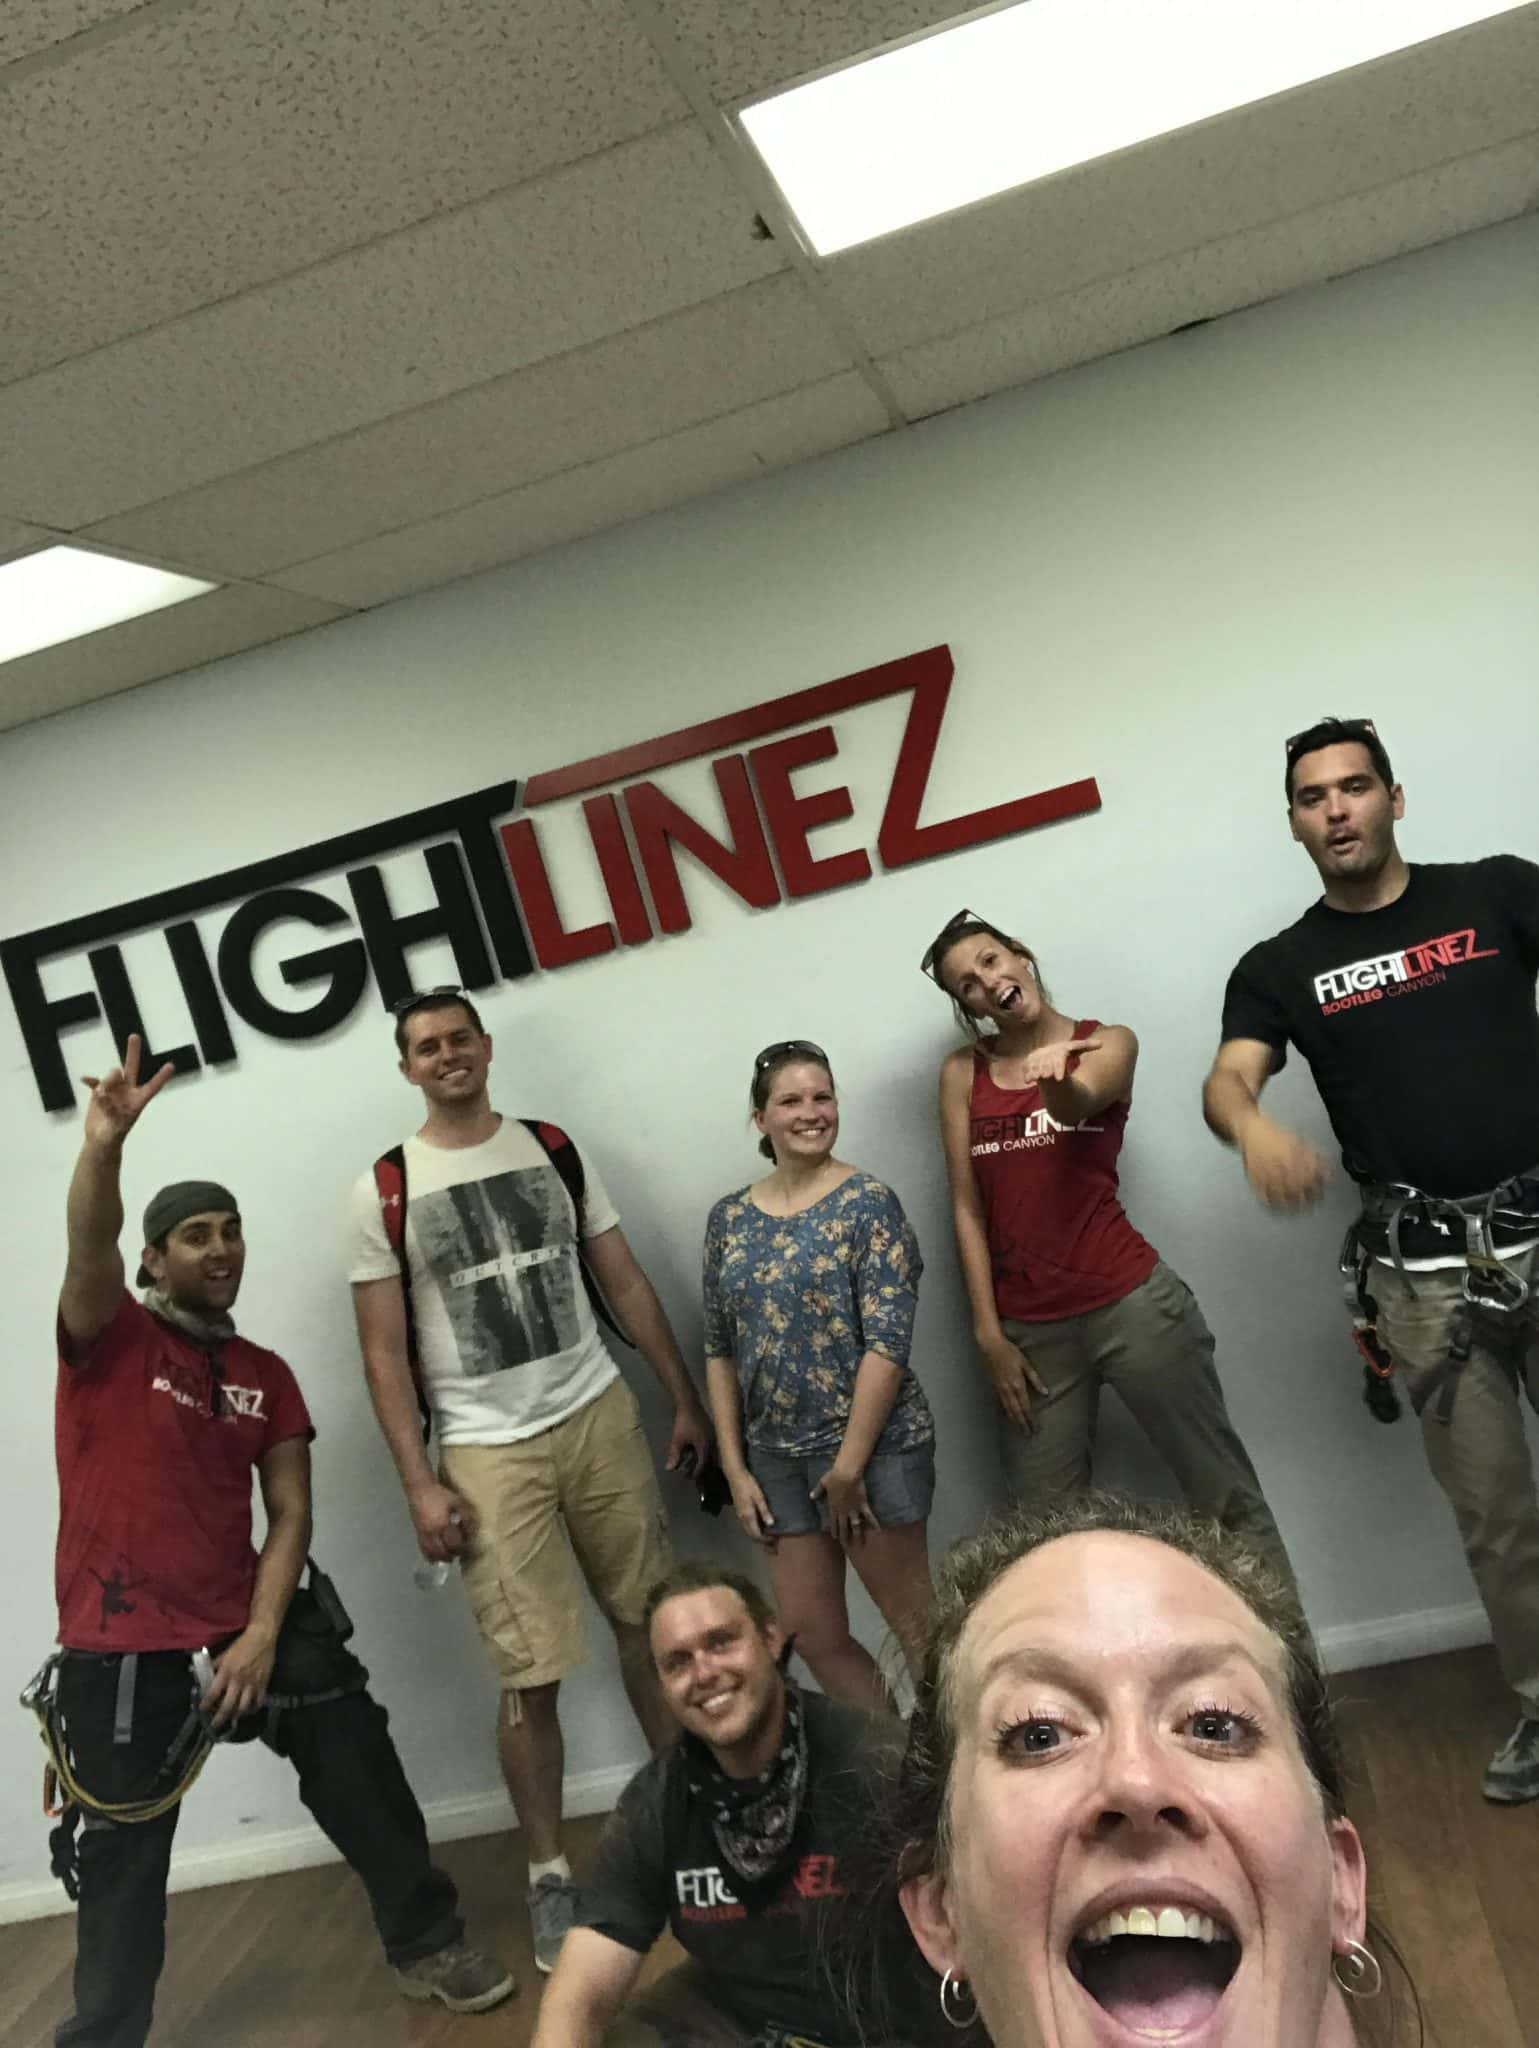 Zip line over the Mojave Desert with @FlightlinezBC #Hosted @USFG